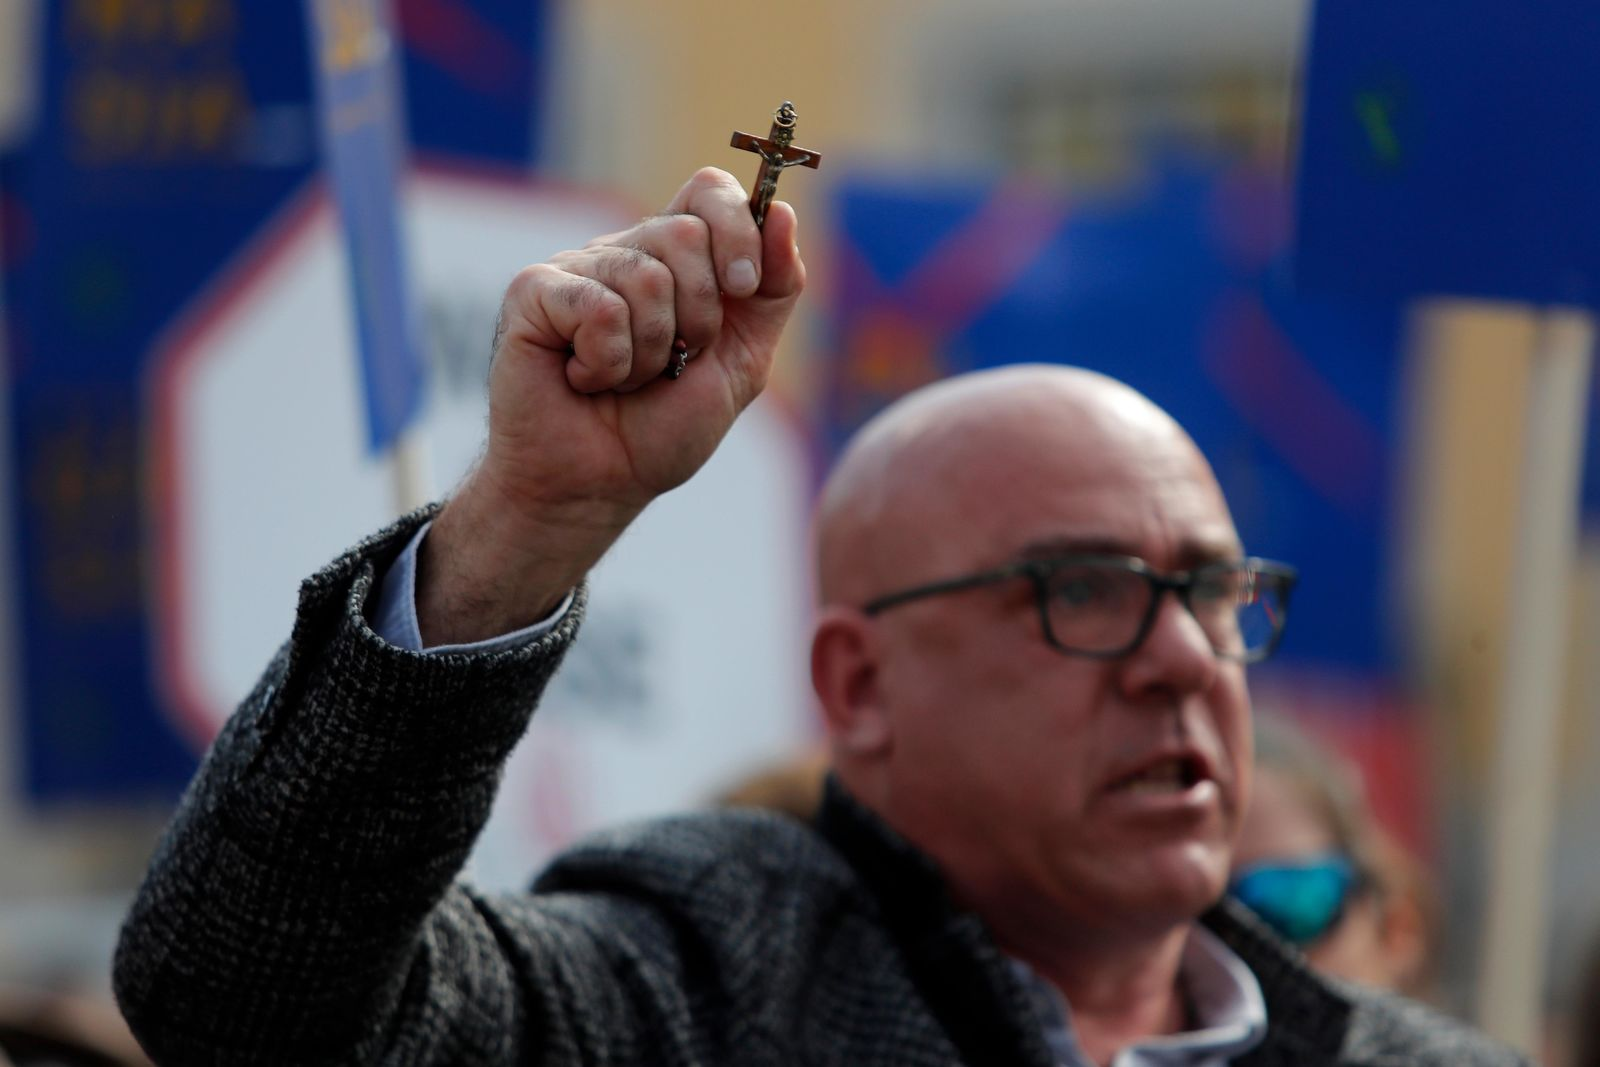 A demonstrator holds a crucifix during a protest outside the Portuguese parliament in Lisbon, Thursday, Feb. 20, 2020. (AP Photo/Armando Franca)